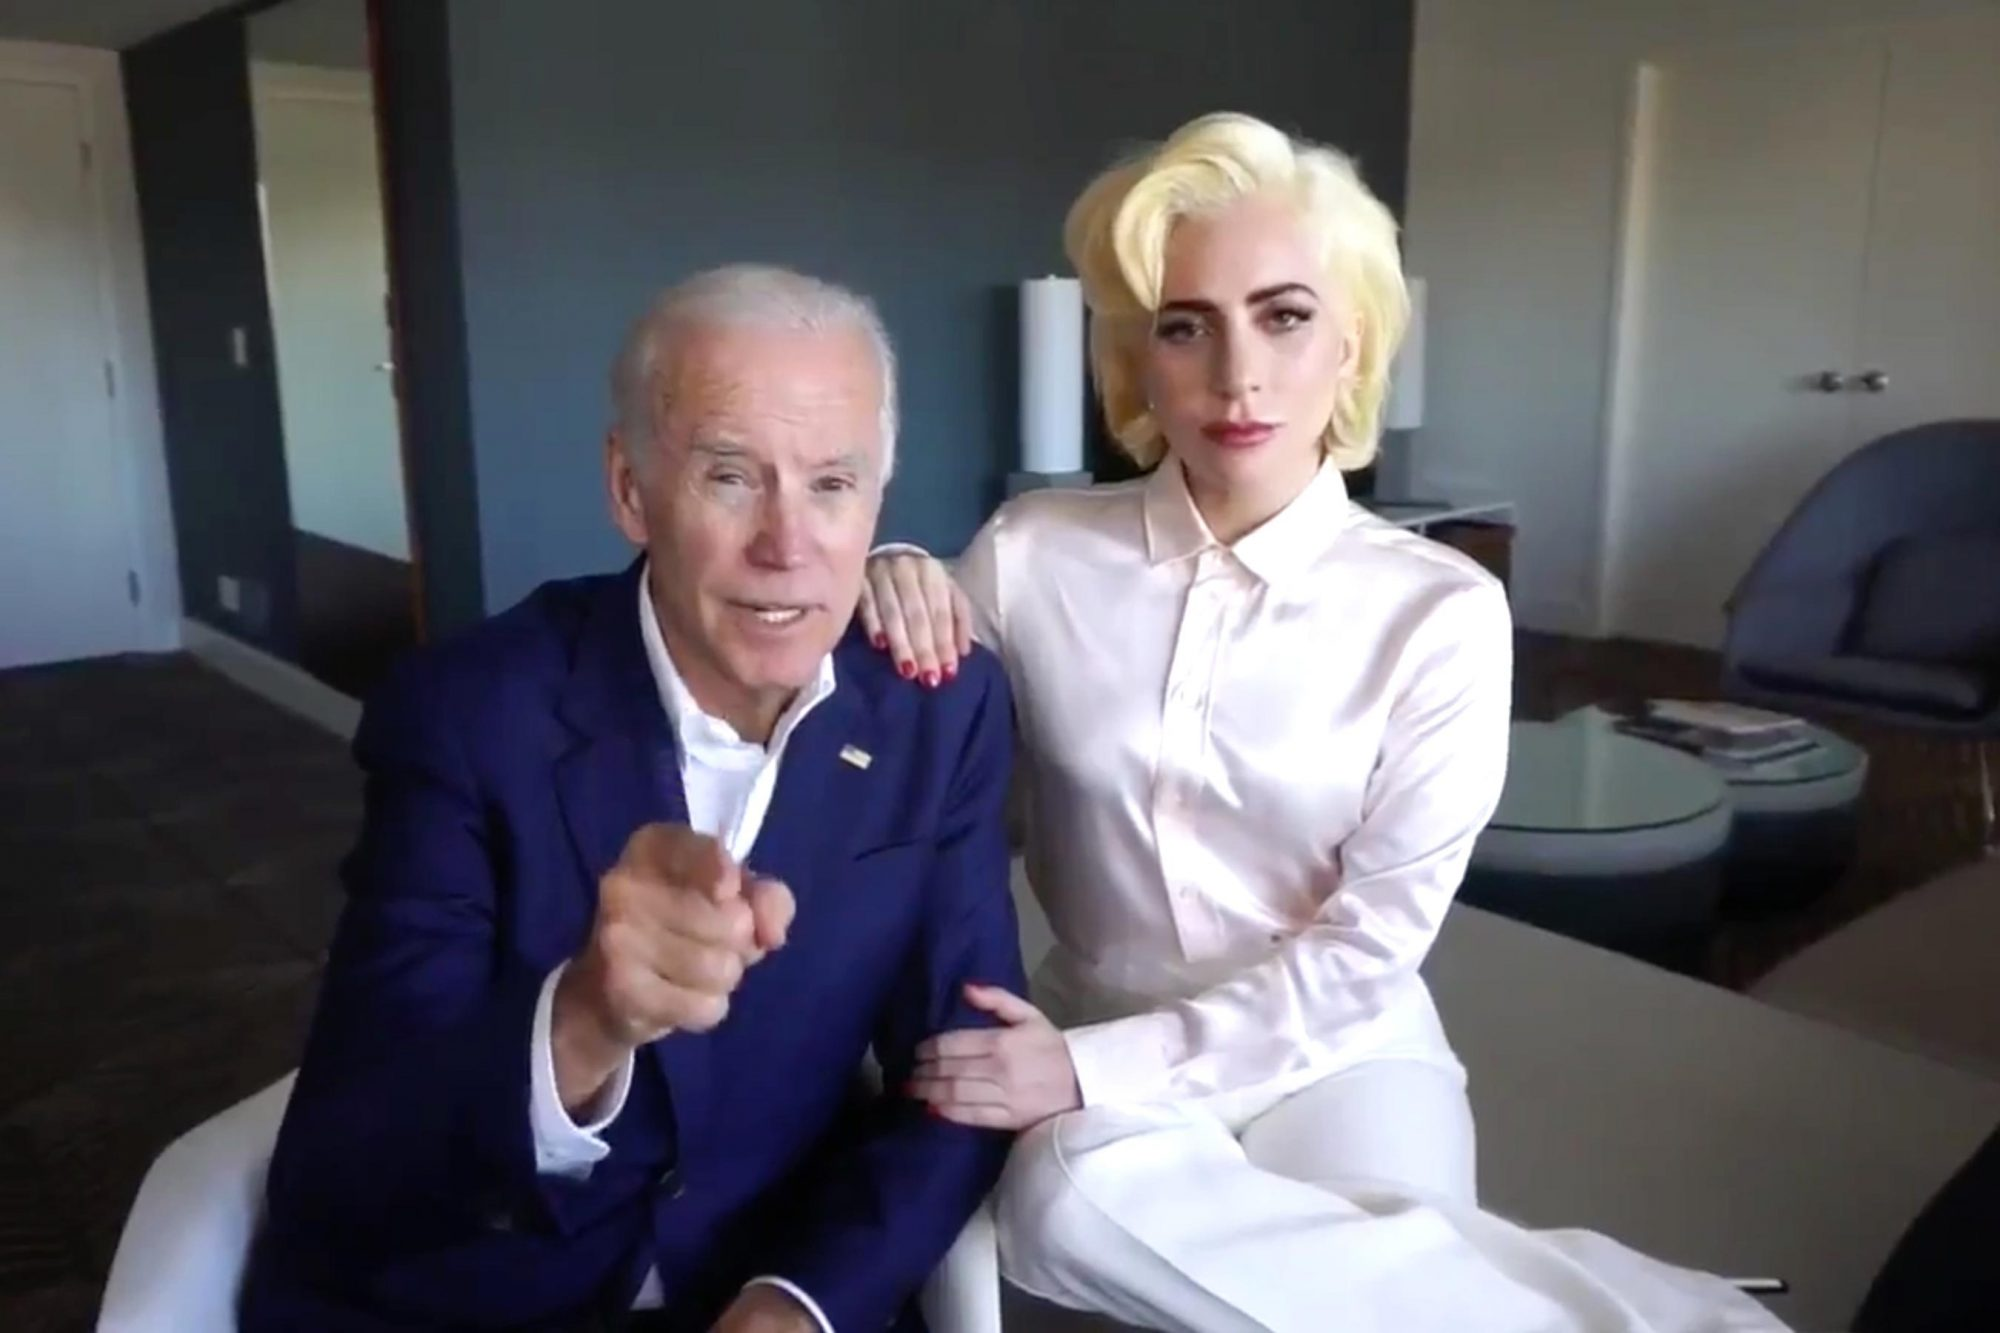 Lady Gaga and Joe Biden (screen grab) CR: Lady Gaga/Twitter